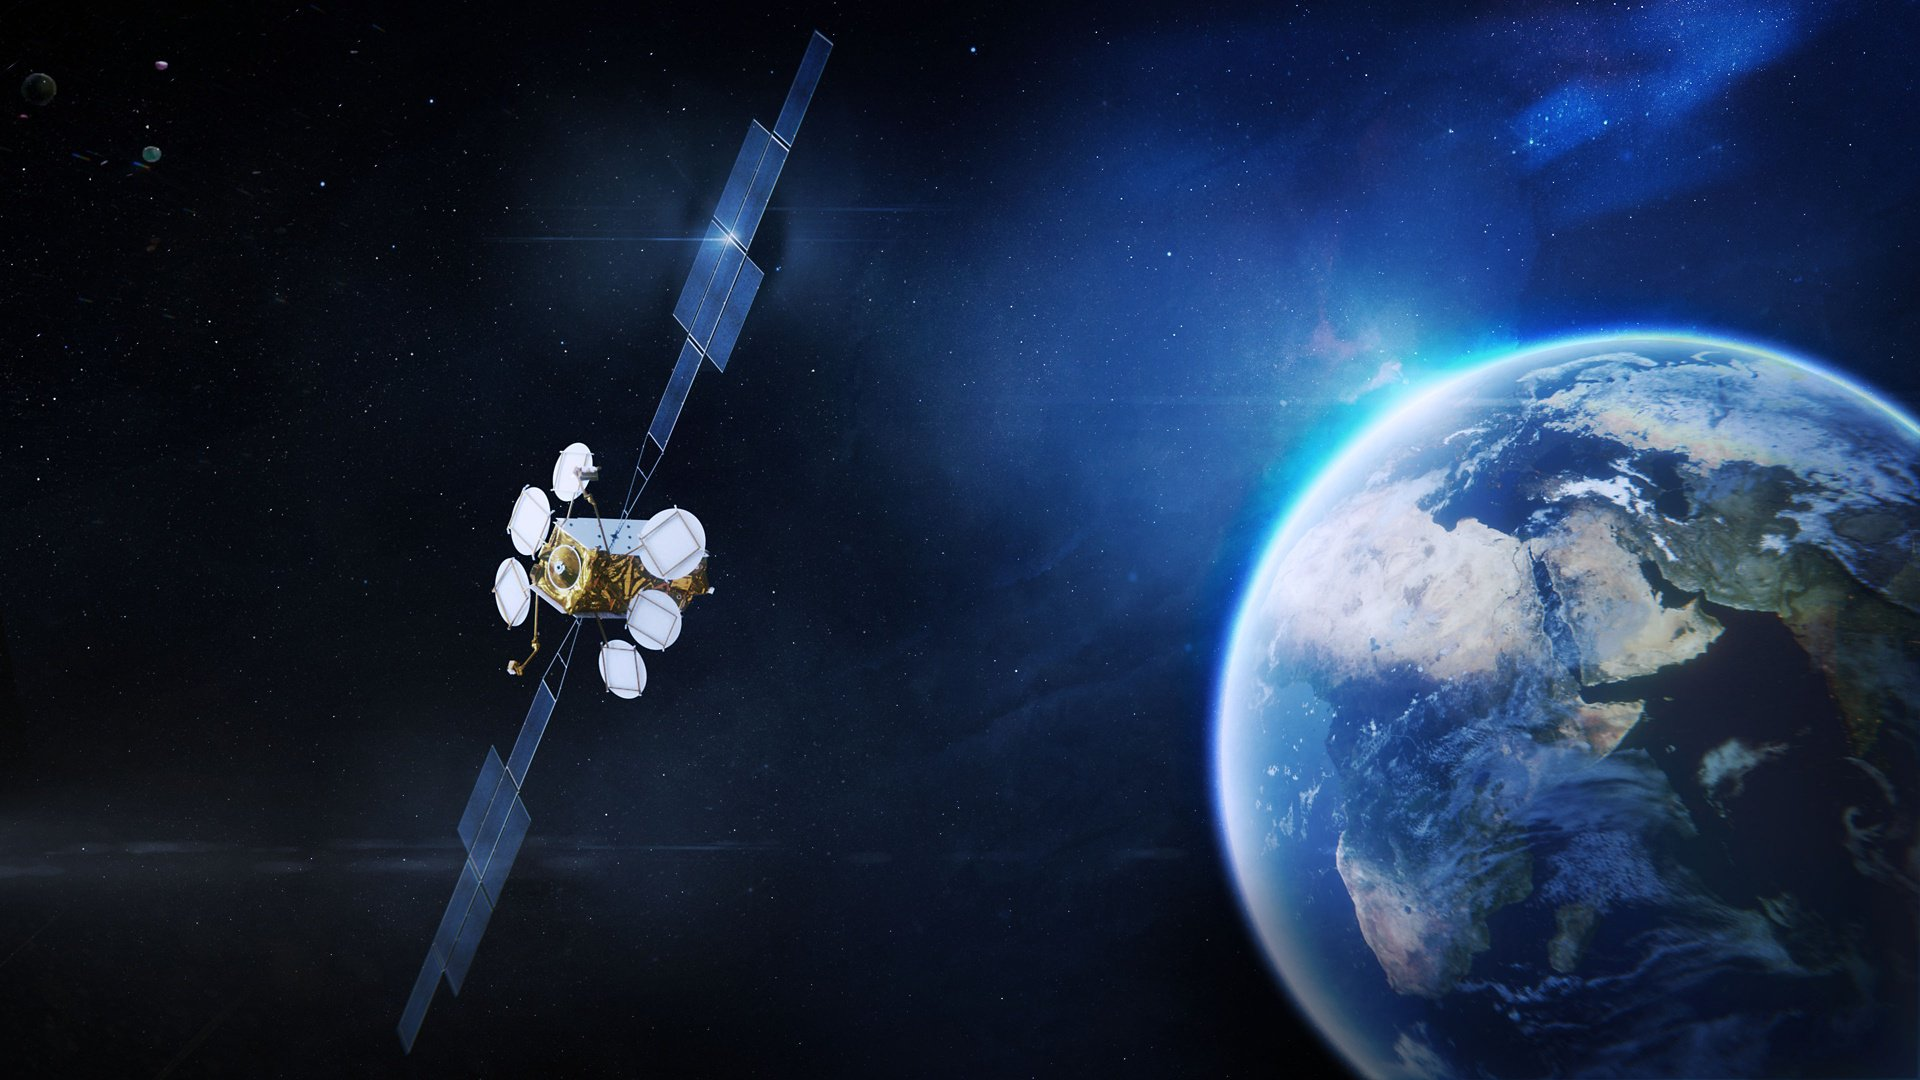 EUTELSAT 36D will replace and enhance capacity at 36°East, a key orbital slot for Eutelsat for TV broadcasting (DTH) and government services over Africa, Russia, and Europe.